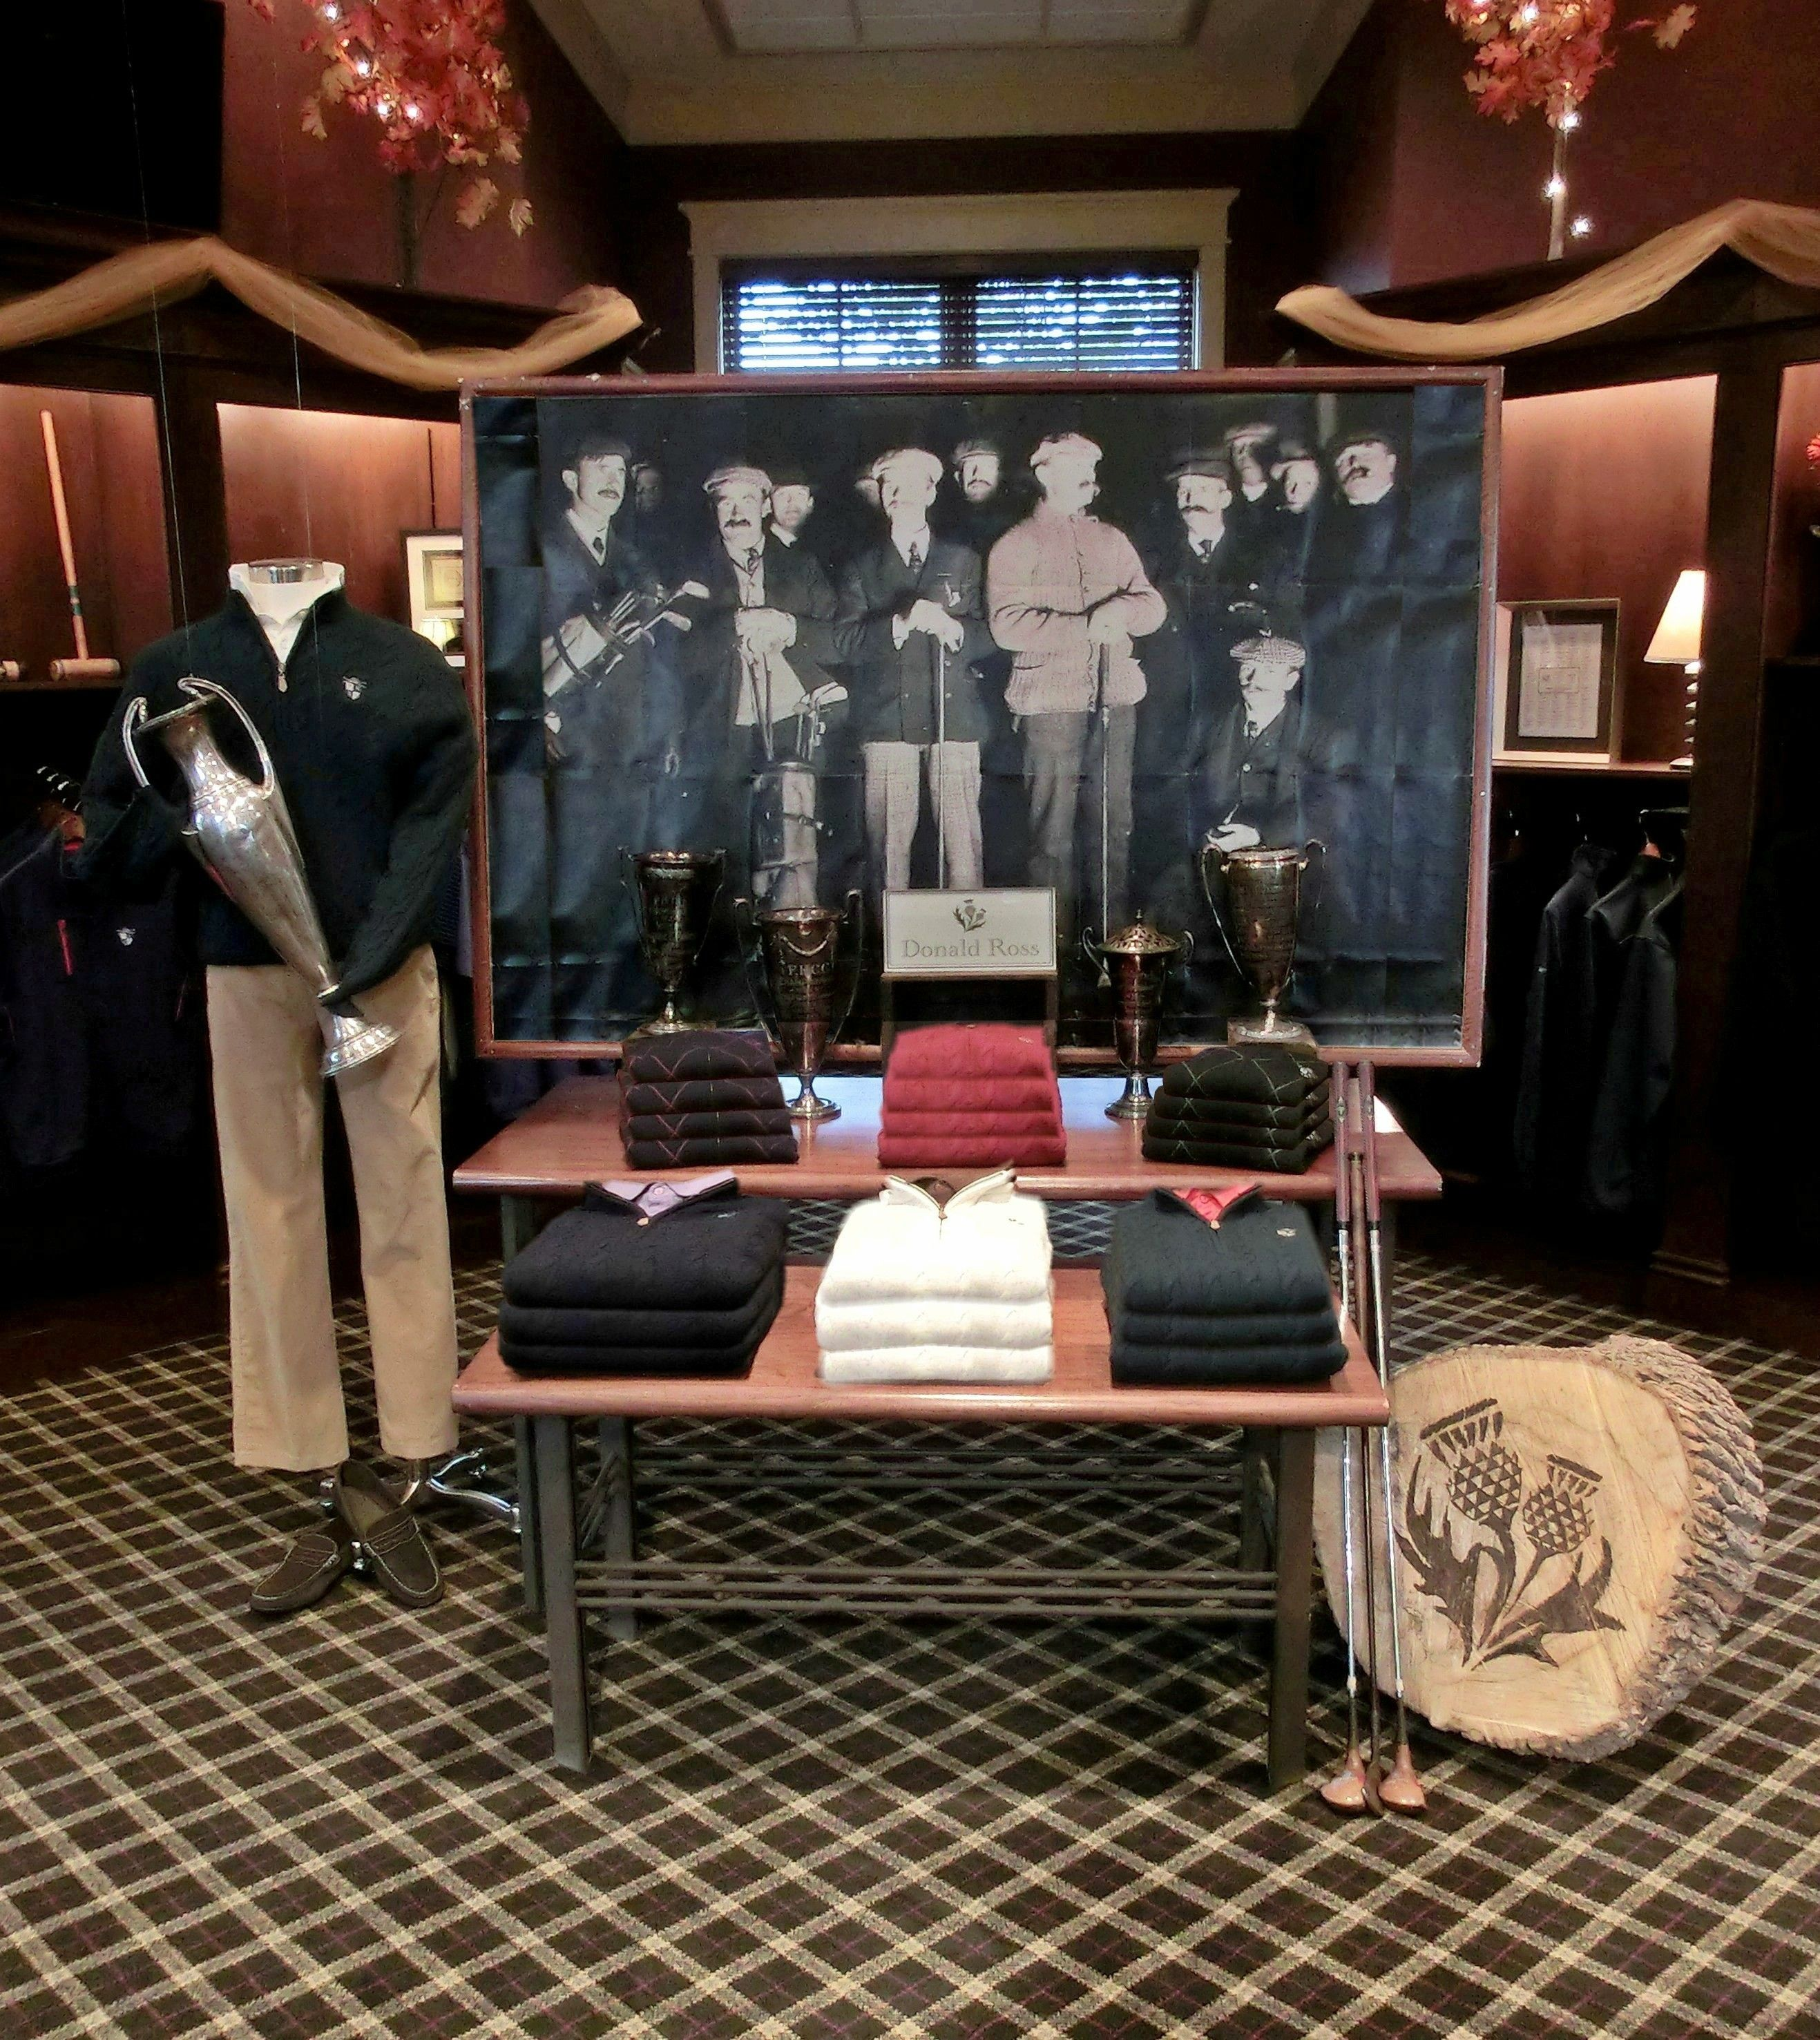 Donald Ross Night Putting Visual Golf Display Donald Ross Sportswear Fountain Head Country Club Hagerstown M Golf Pro Shop Golf Shop Visual Merchandising